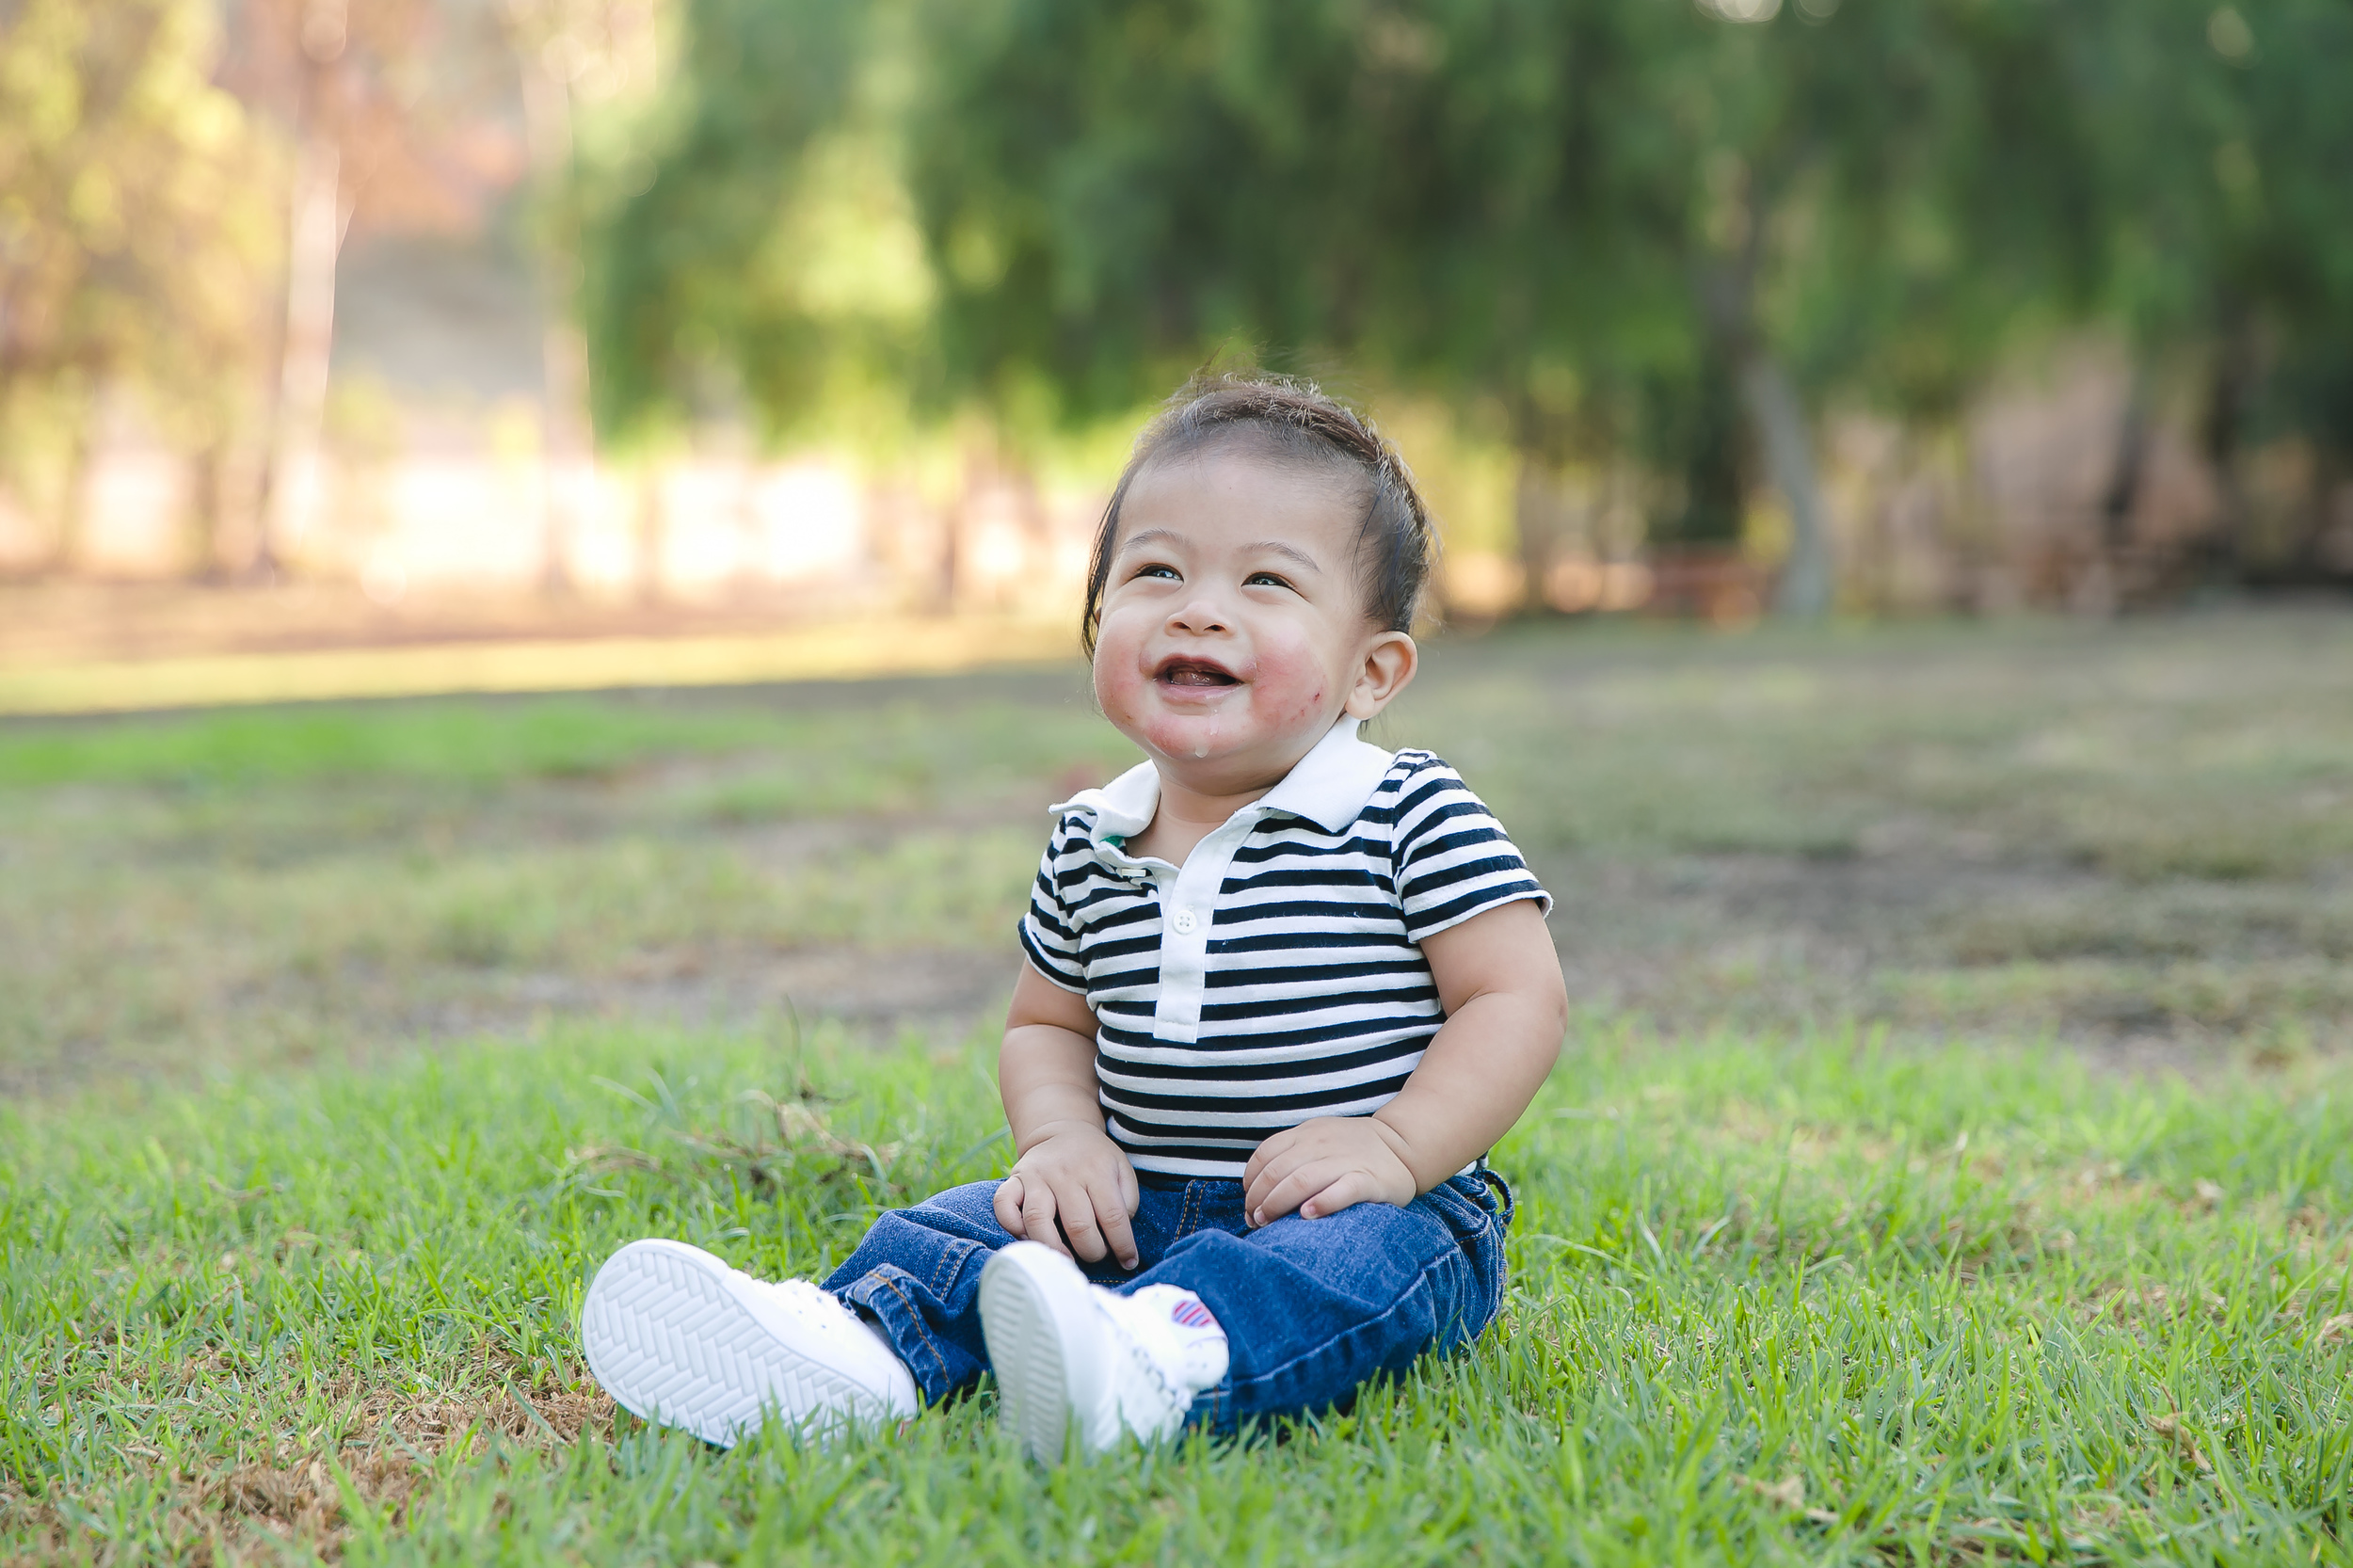 San Gabriel Valley Children's Photos, Grow with Me Session, 7 months, Dominic, Baby Boy, Handsome little man, Los Angeles Family Photographer, Best of LA, Lifestyle Children's Photography, Outdoor Park Photos